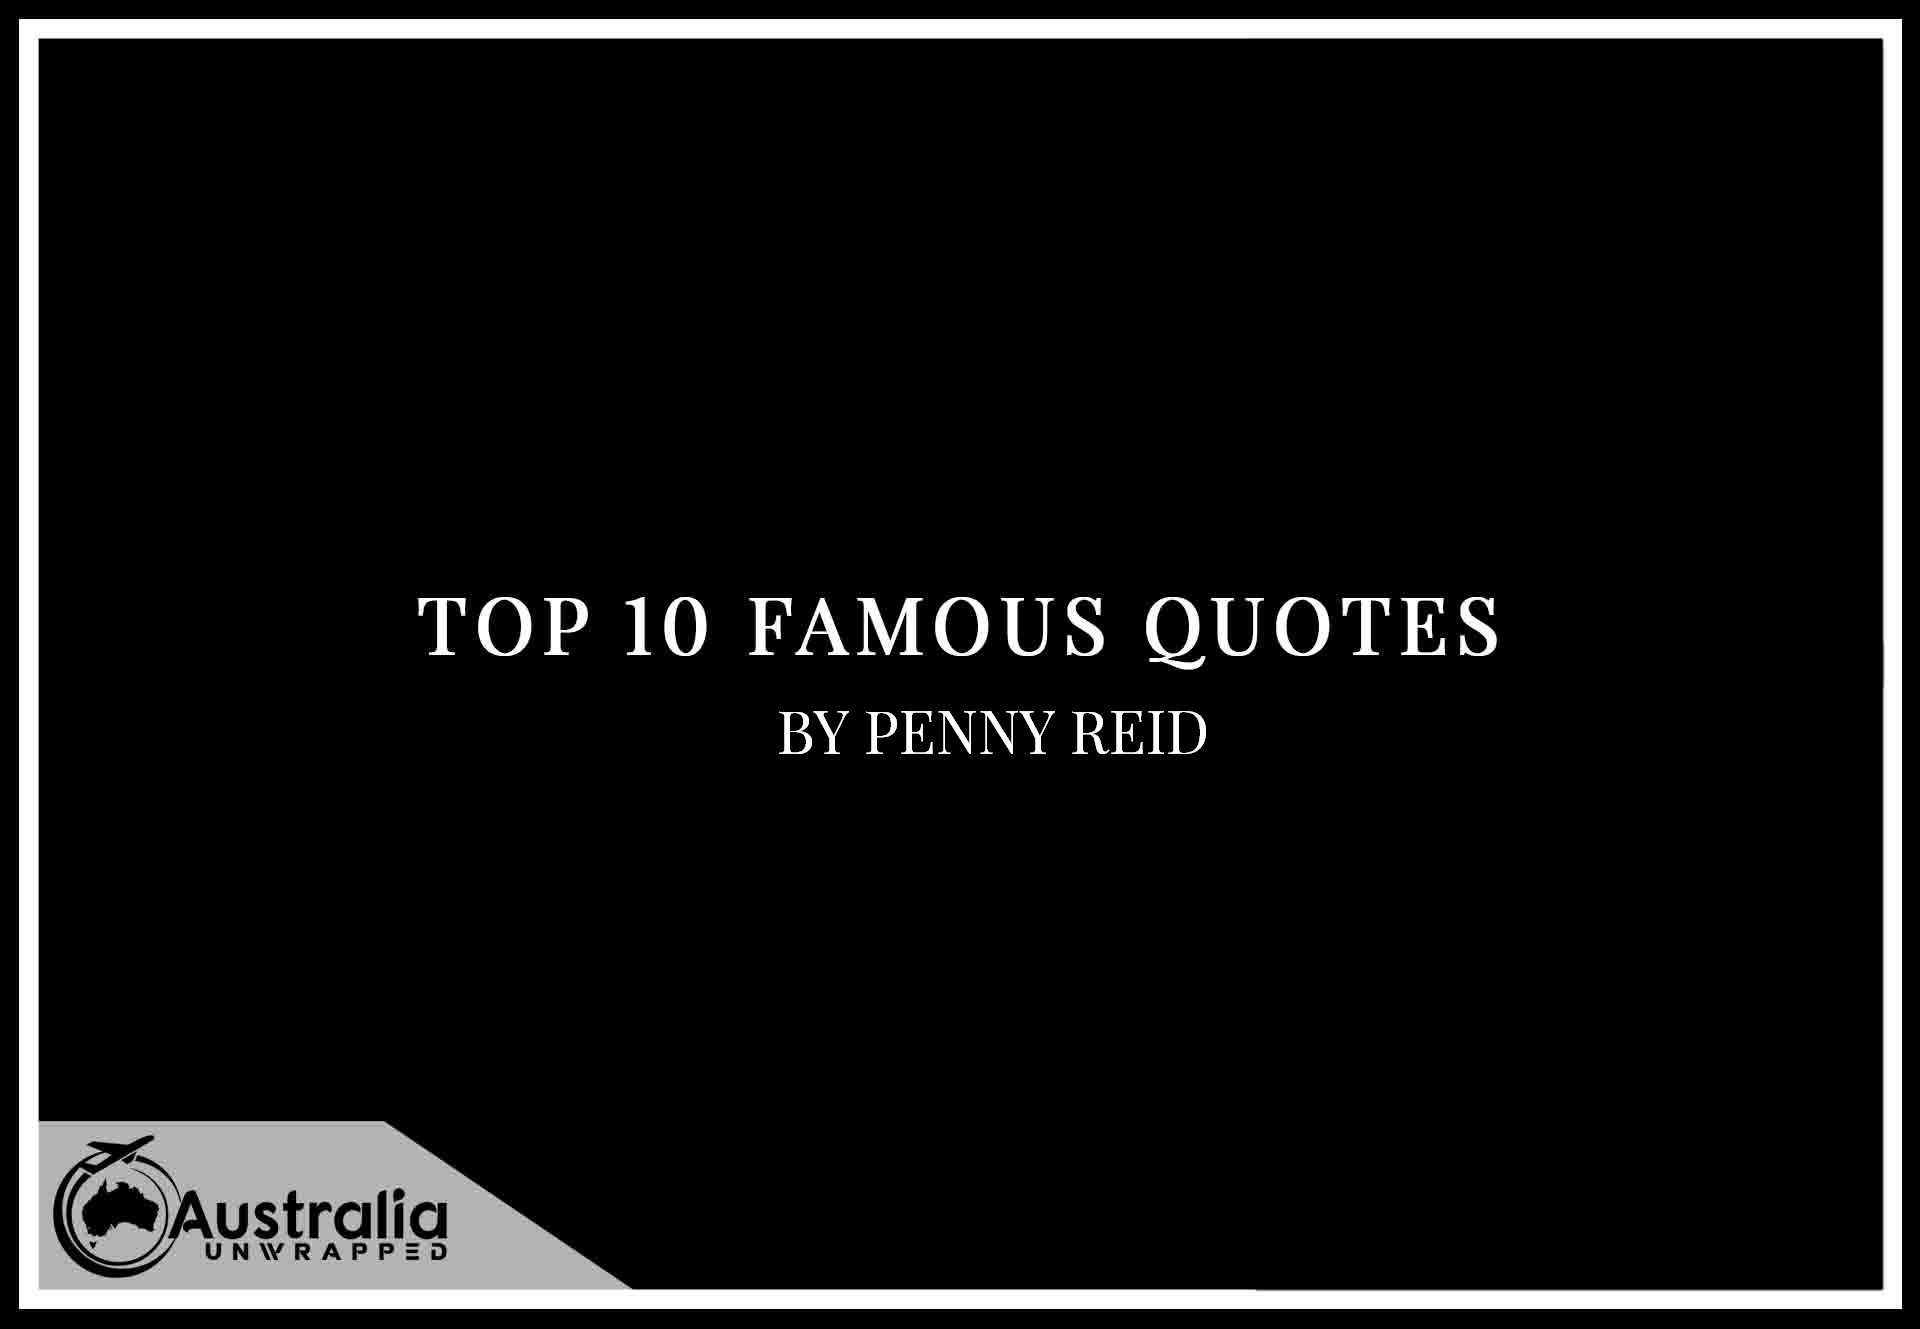 Top 10 Famous Quotes by Author Penny Reid